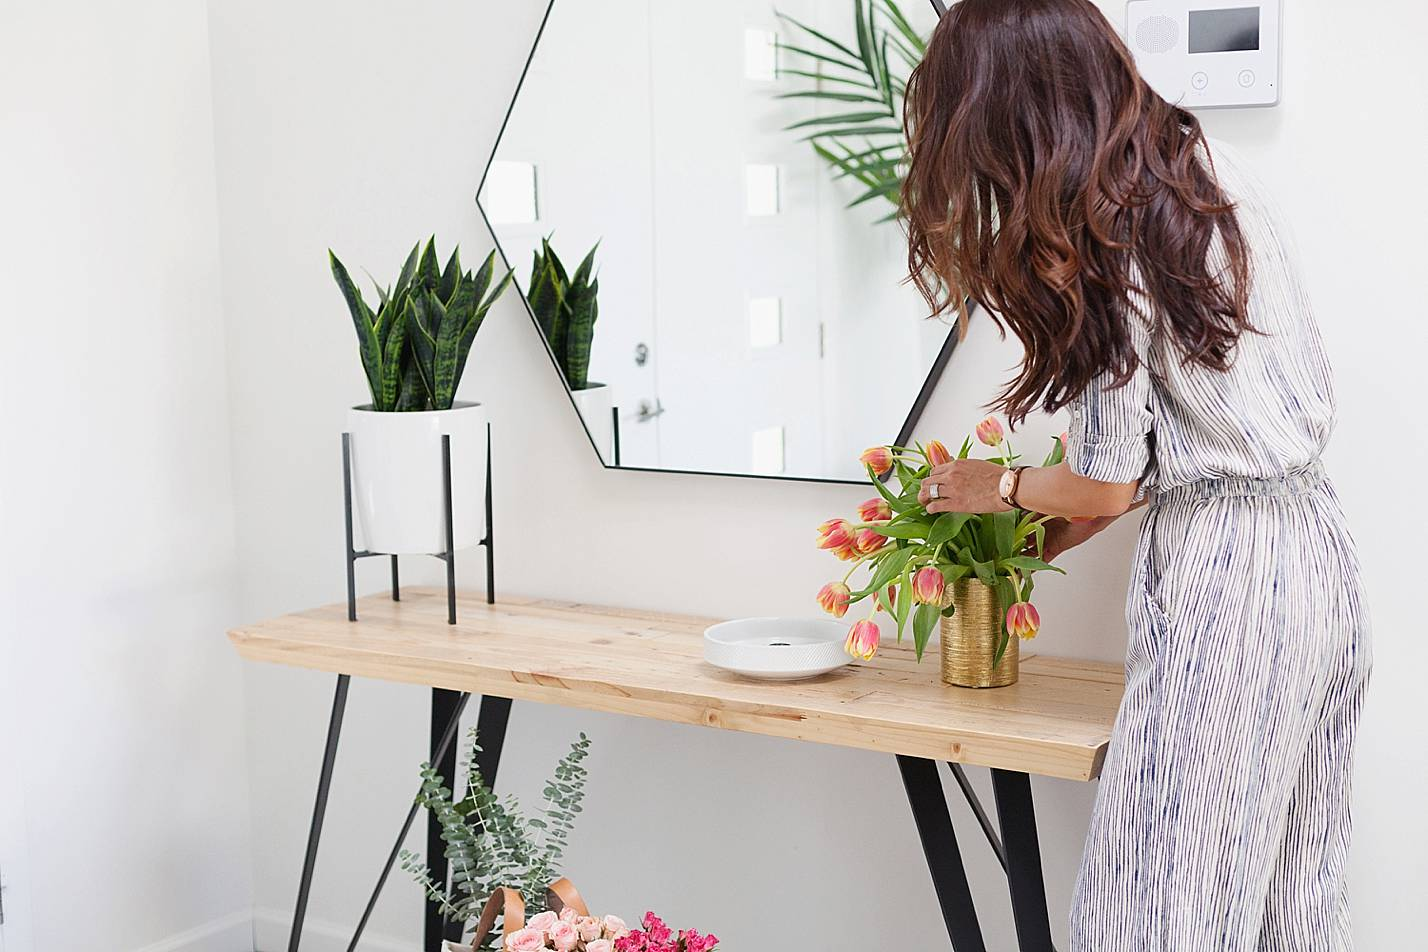 lifestyle shot rearranging flowers on console table in stripe jumpsuit